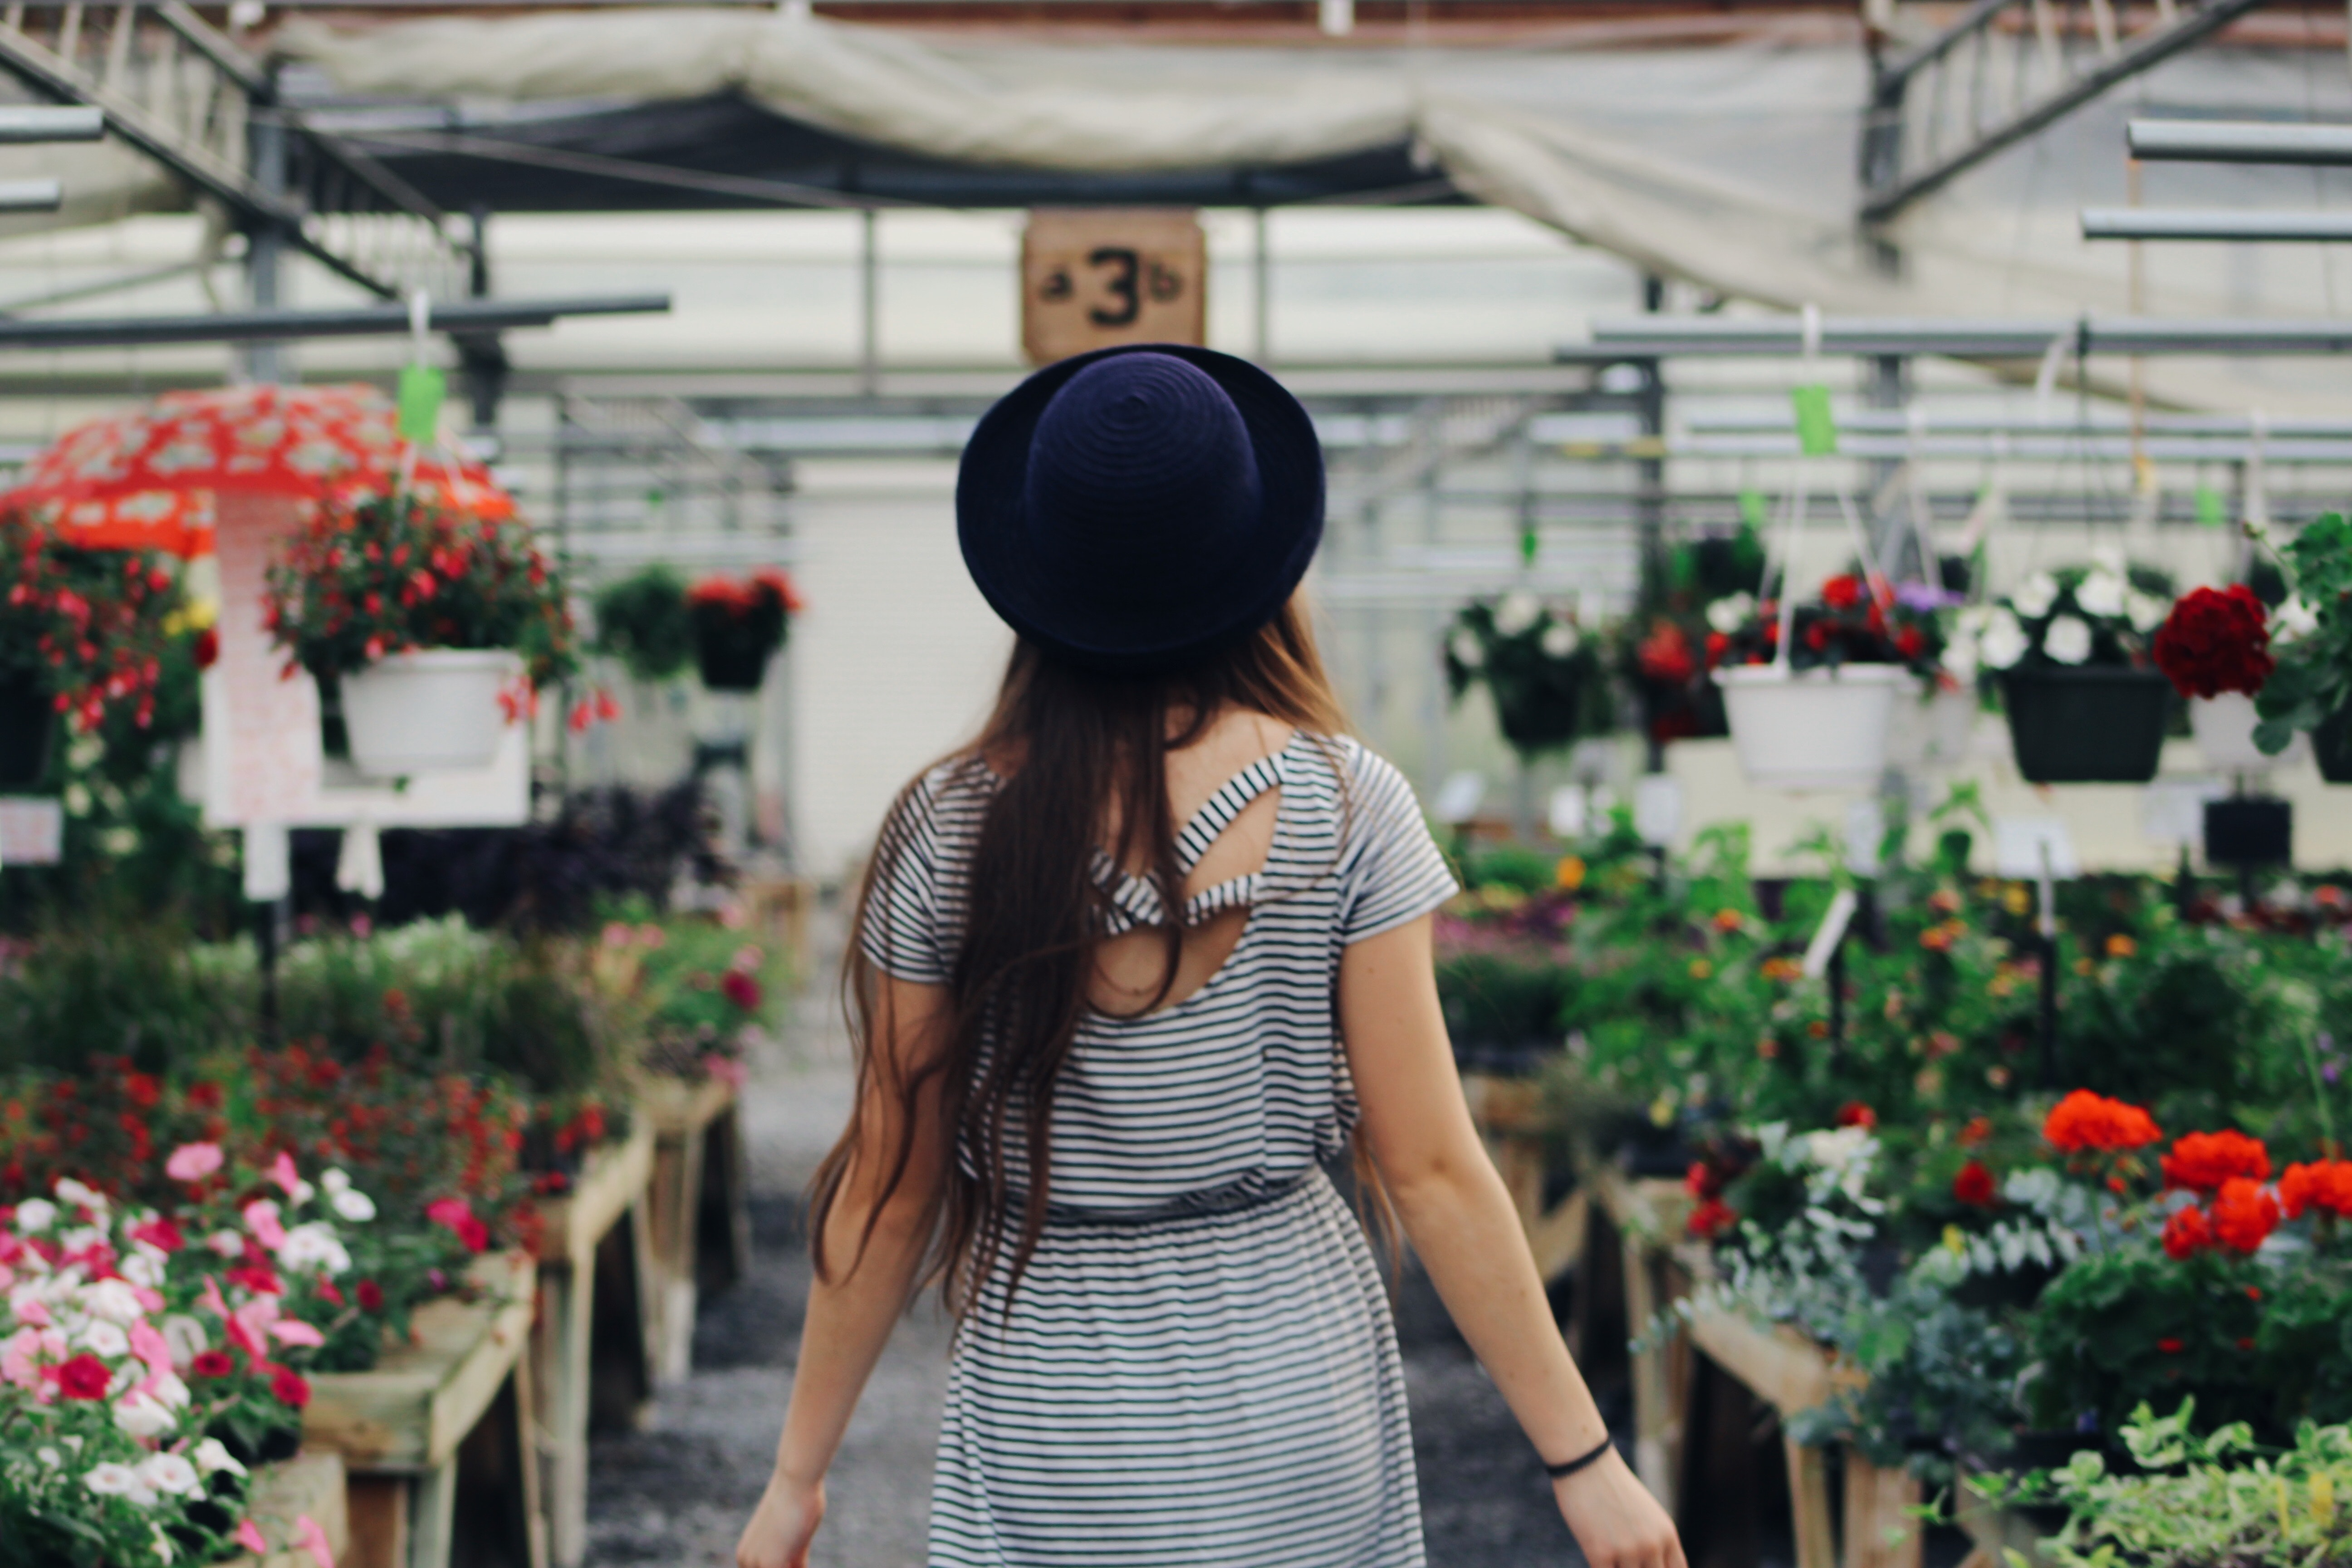 Woman Walking Between Display of Flowers and Plants, Plants, Woman, Wear, Urban, HQ Photo